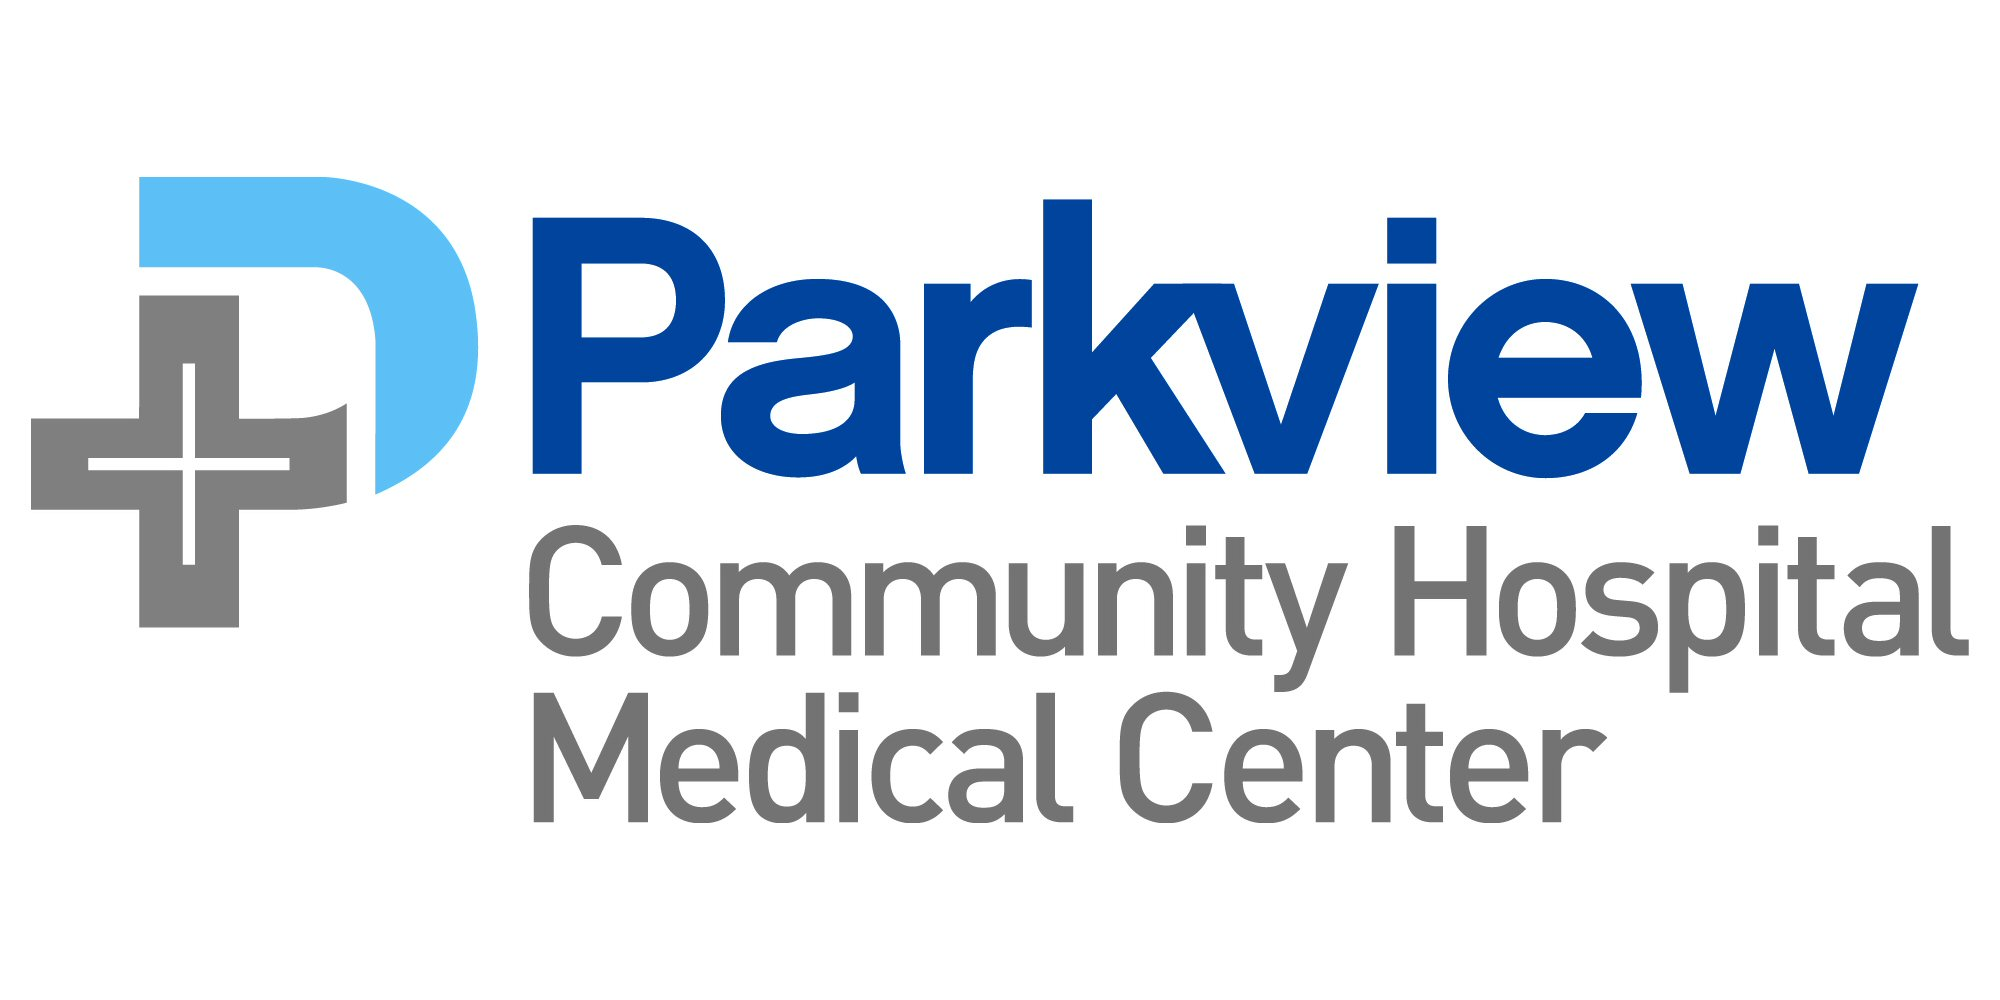 Parkview Community Hospital Medical Center logo